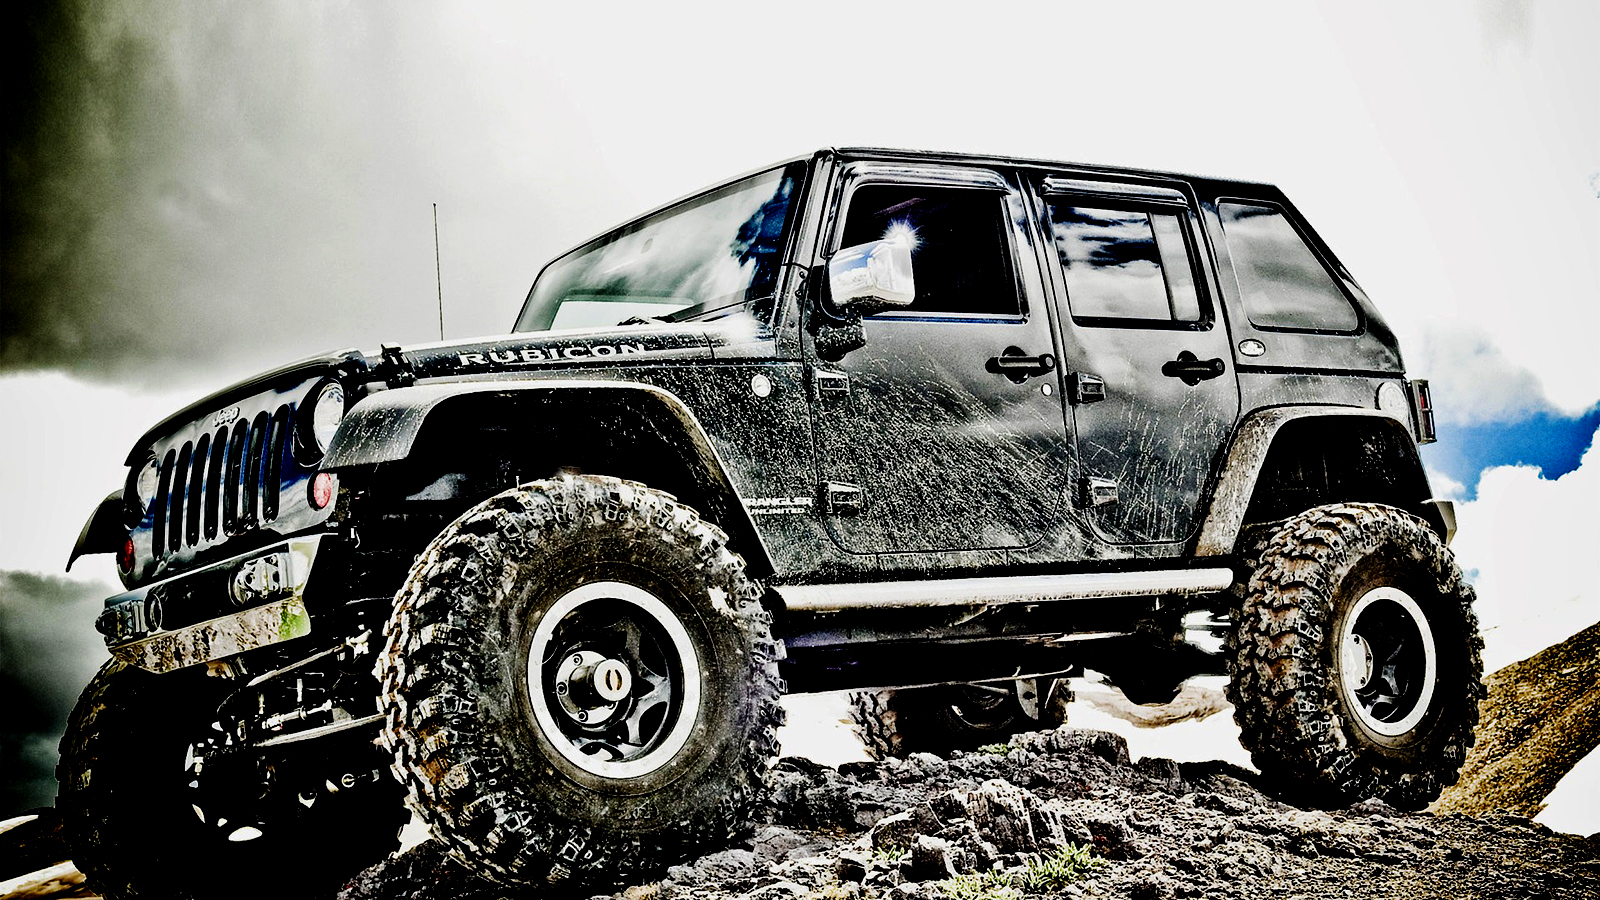 Central Wallpaper Off Road Vehicles 4X4 Jeeps HD Wallpapers 1600x900